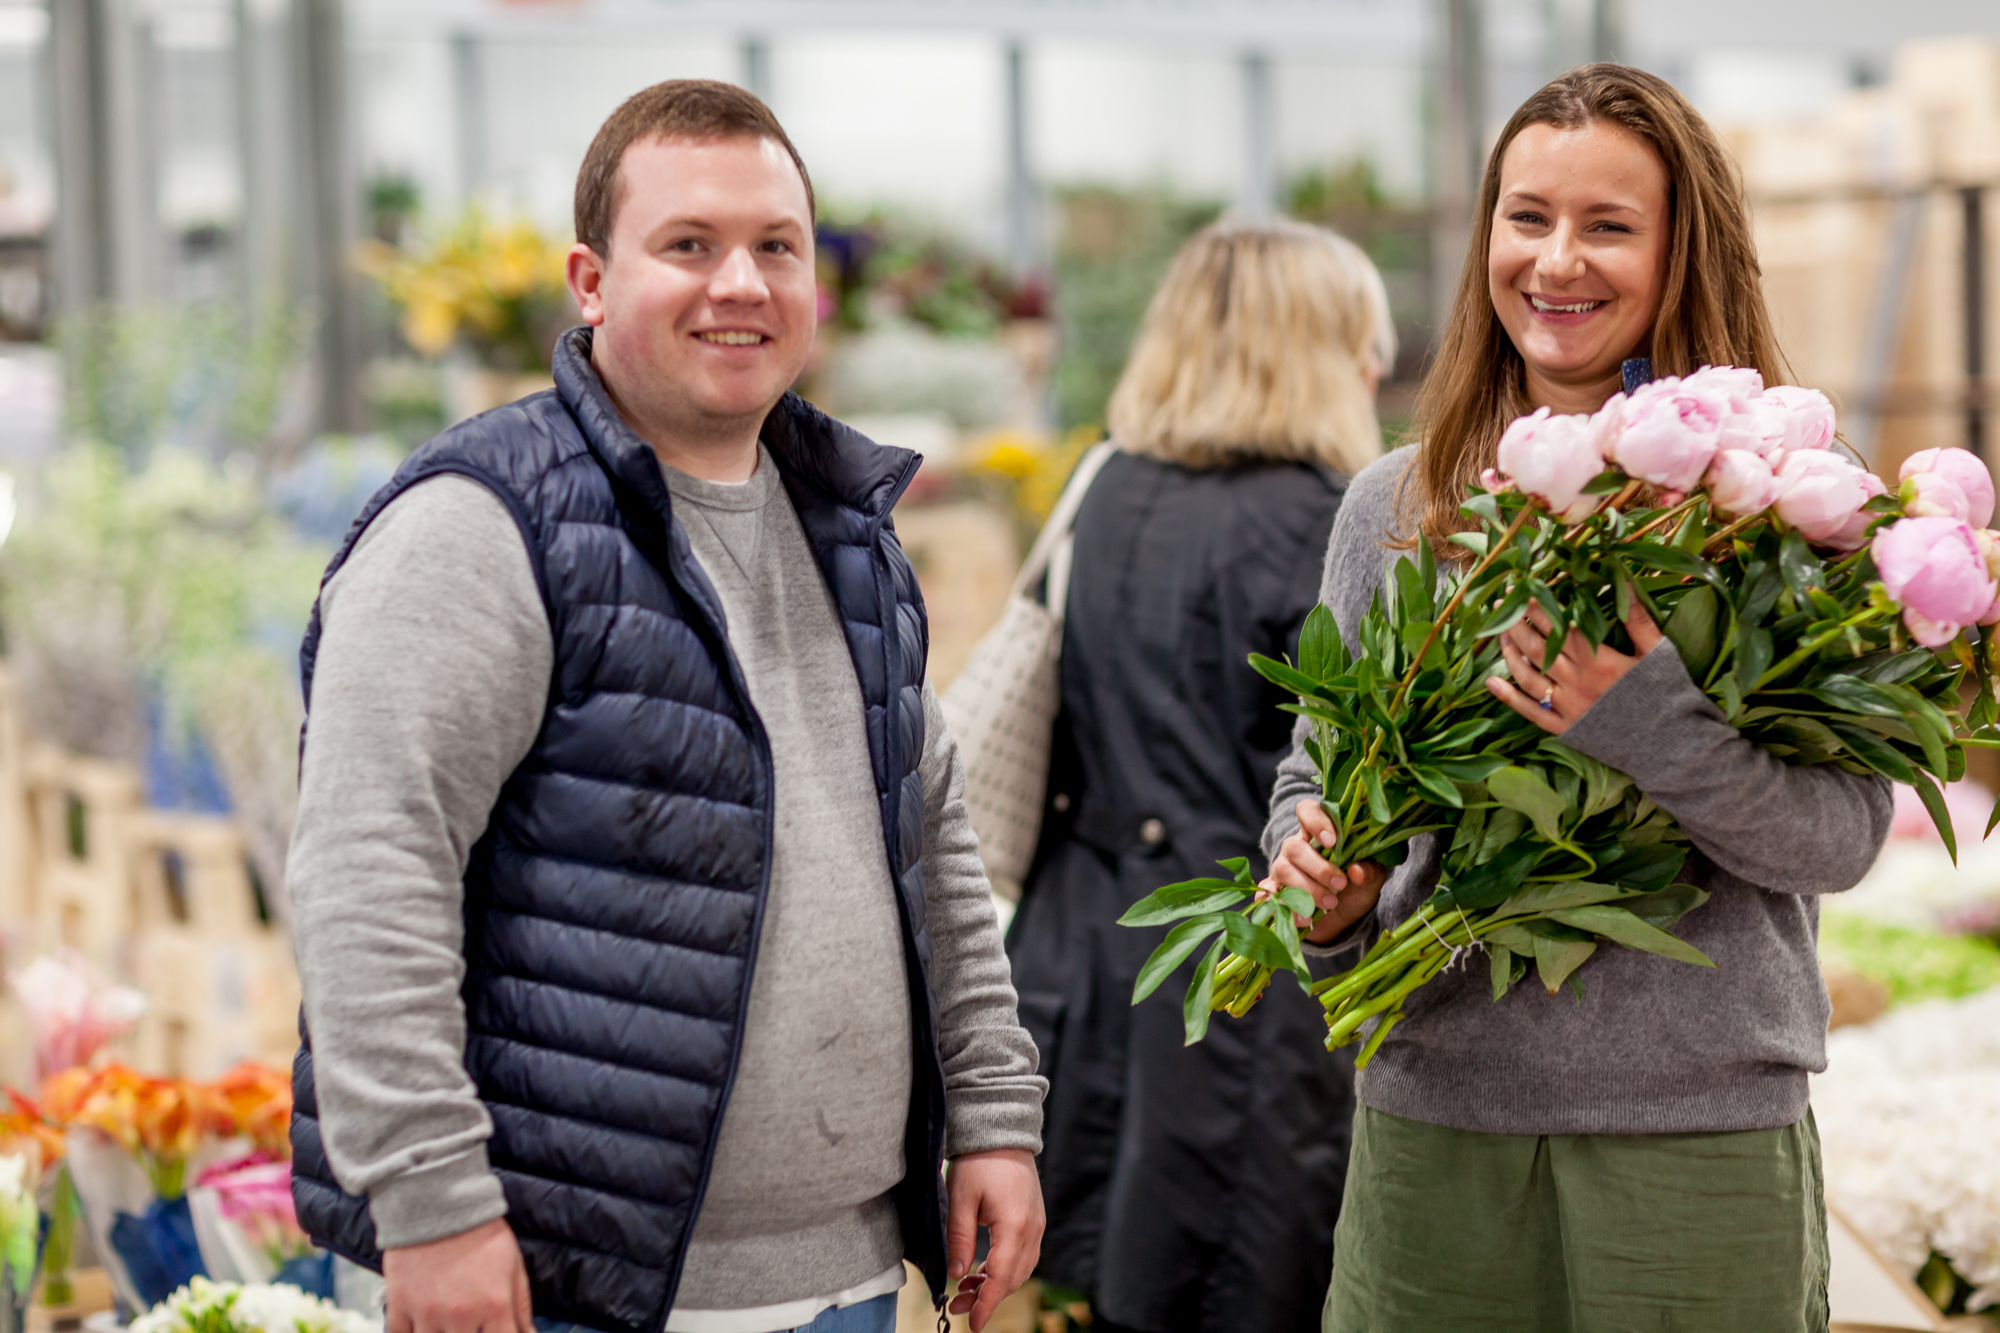 British-Flowers-Week-2017-Jennifer-Pinder-at-Bloomfield-New-Covent-Garden-Flower-Market Jennifer Pinder offers floristry teaching in Kent near london(3).jpg